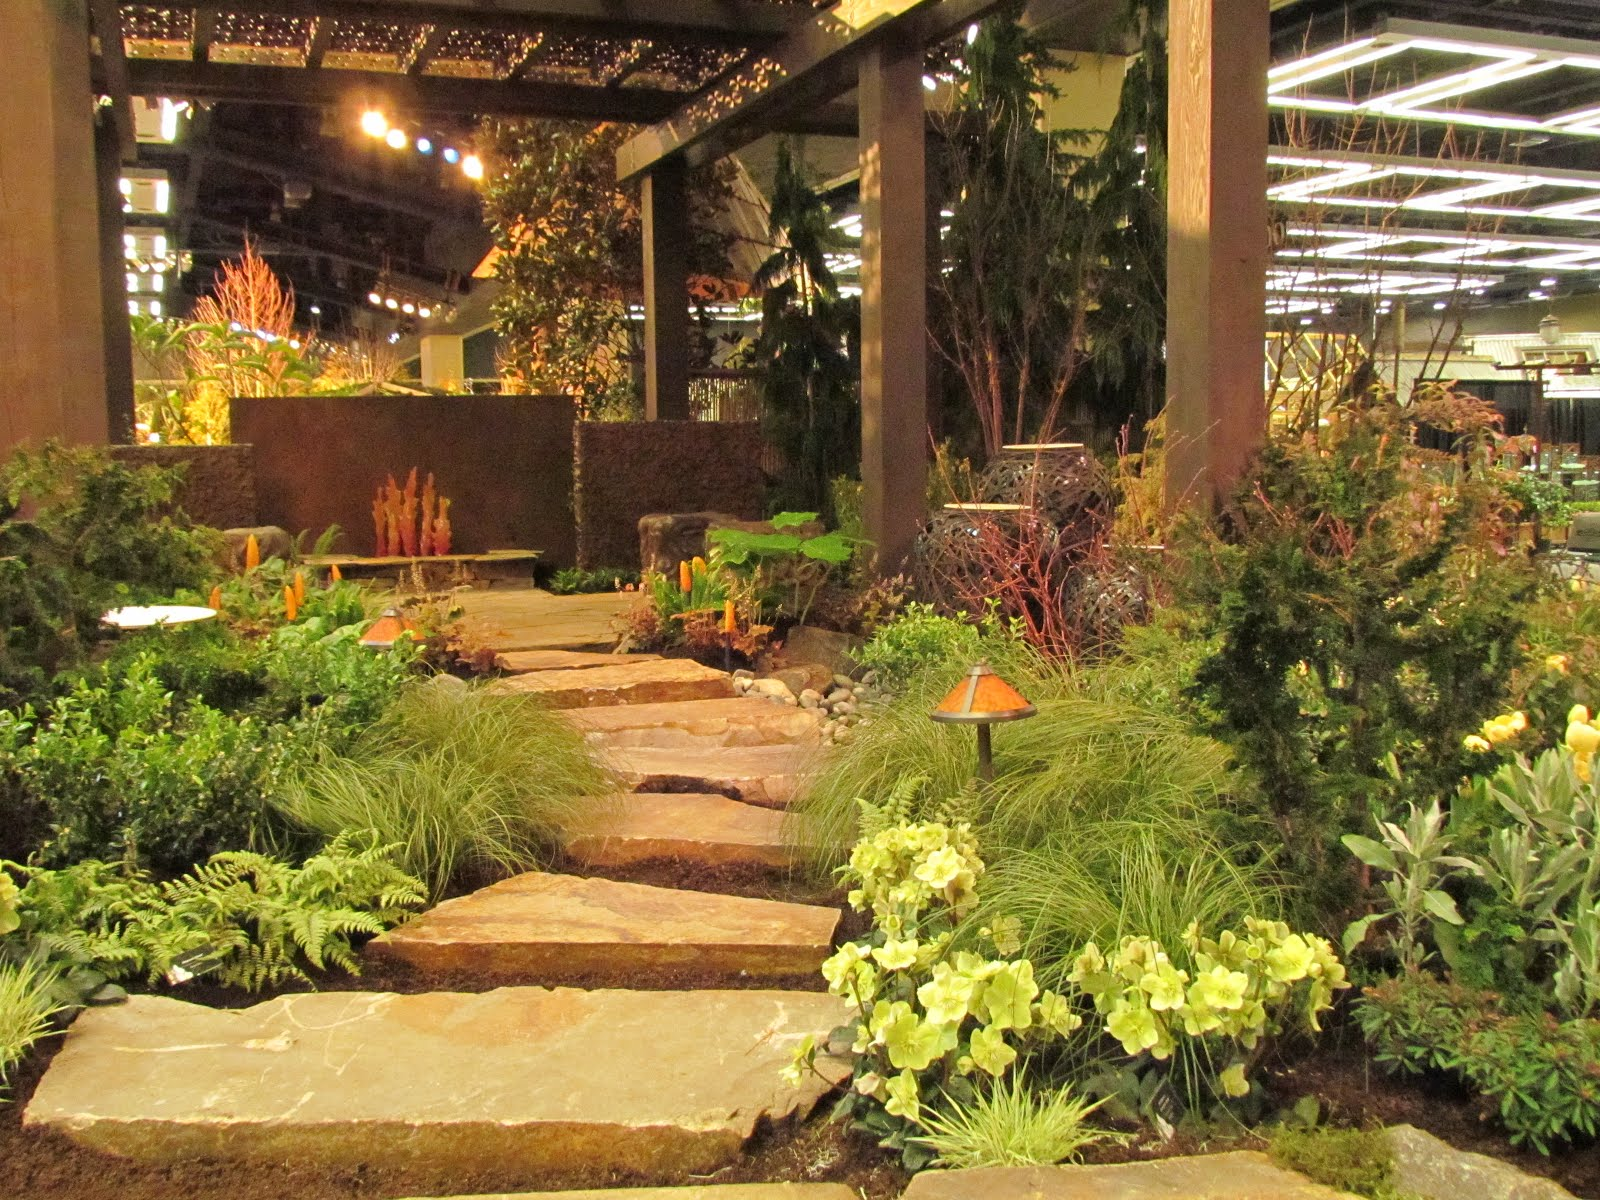 Bwisegardening brief reflections from northwest flower for Garden design channel 4